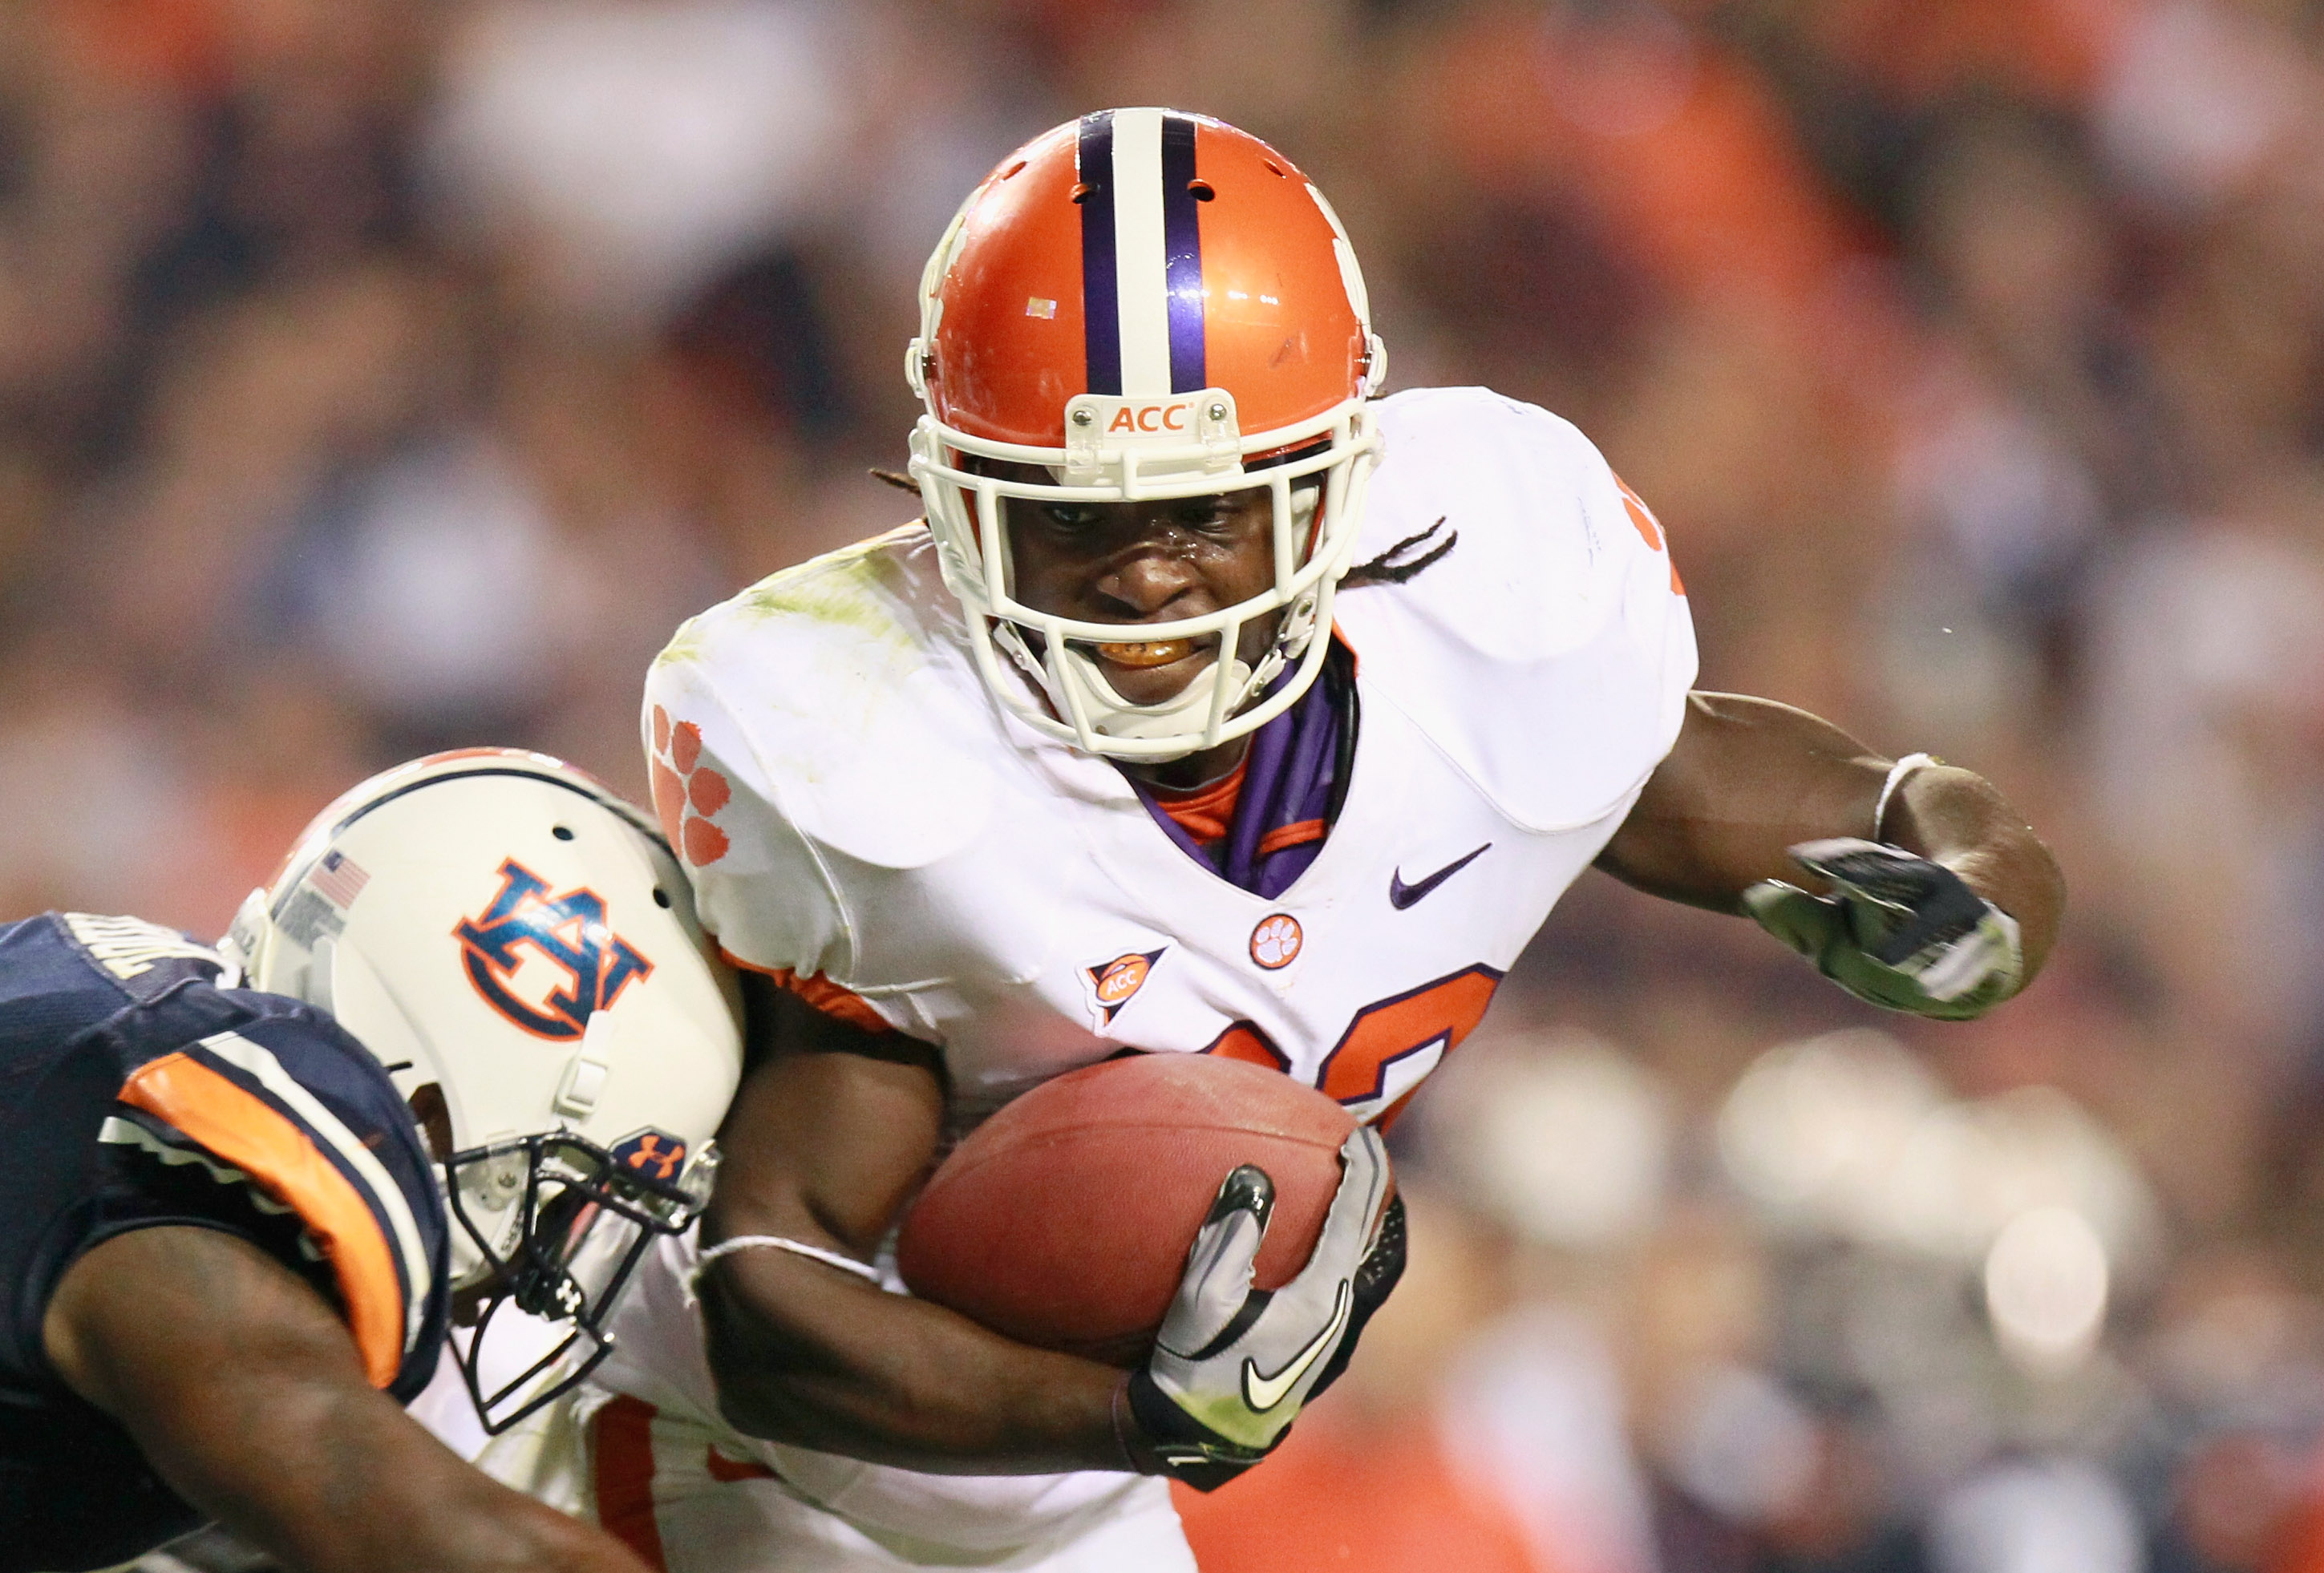 AUBURN, AL - SEPTEMBER 18:  Andre Ellington #23 of the Clemson Tigers against the Auburn Tigers at Jordan-Hare Stadium on September 18, 2010 in Auburn, Alabama.  (Photo by Kevin C. Cox/Getty Images)